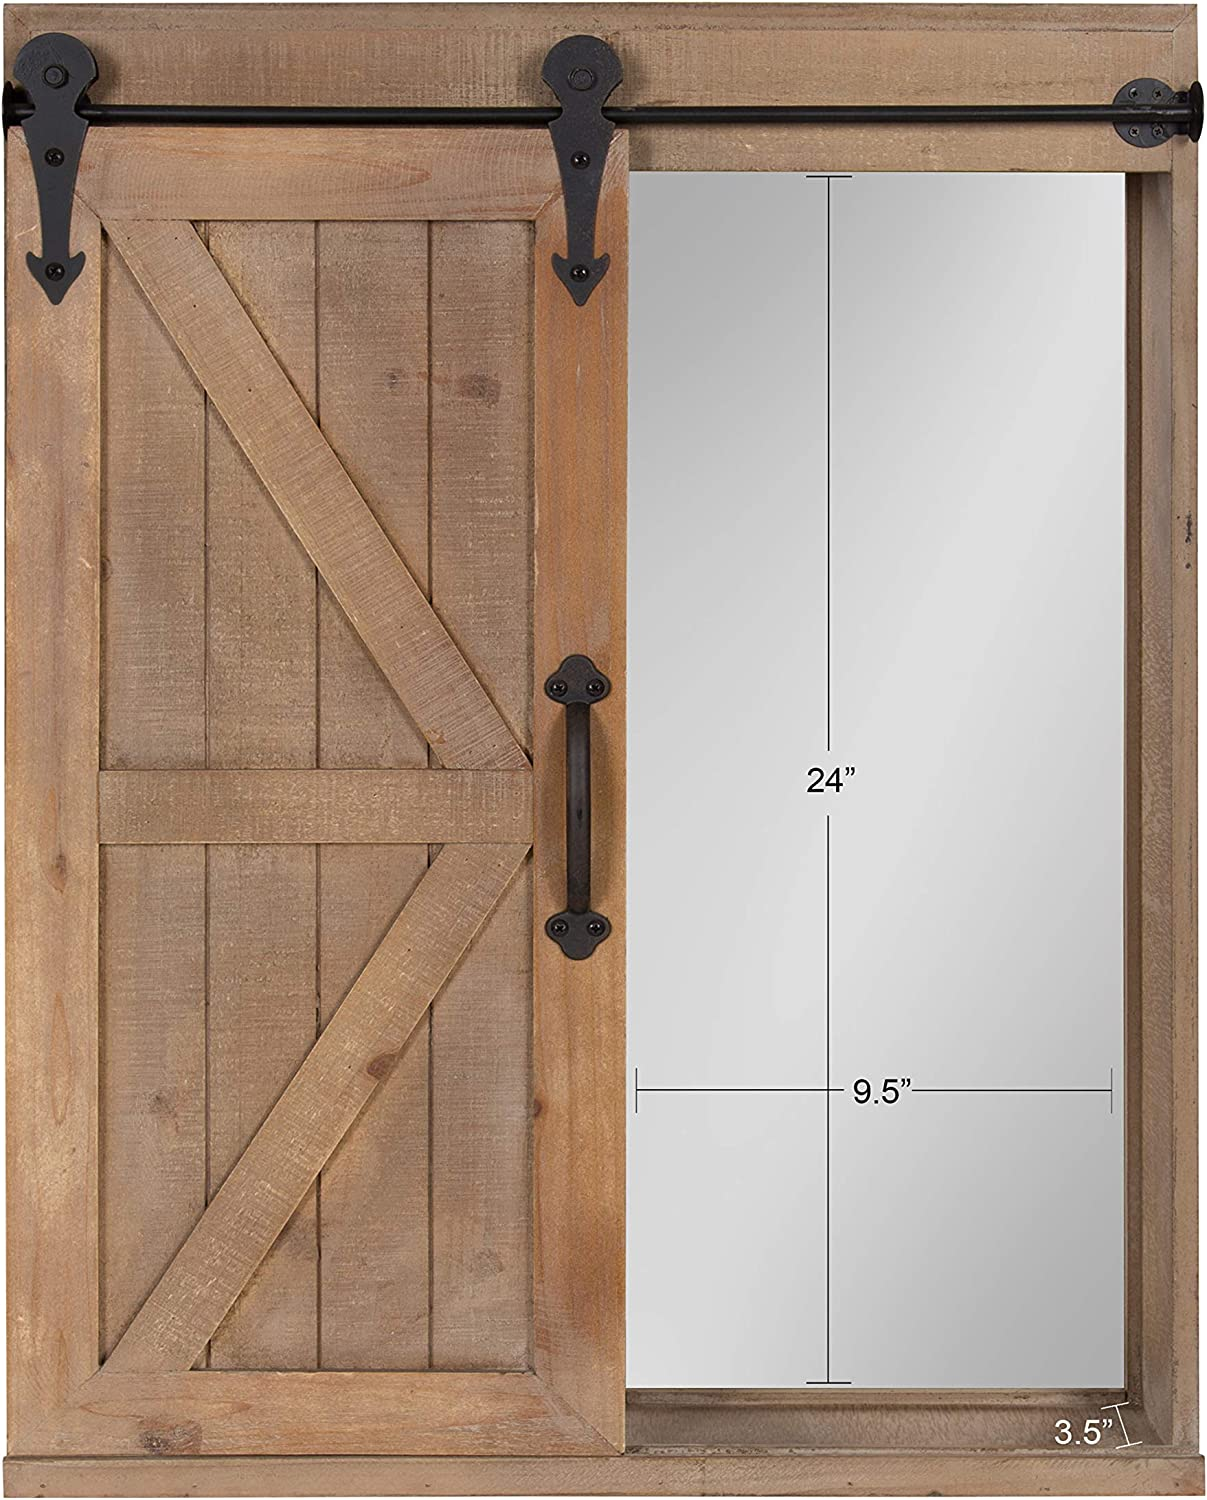 Amazon Com Kate And Laurel Cates Wood Wall Storage Cabinet With Vanity Mirror And Sliding Barn Door Rustic Brown Home Kitchen